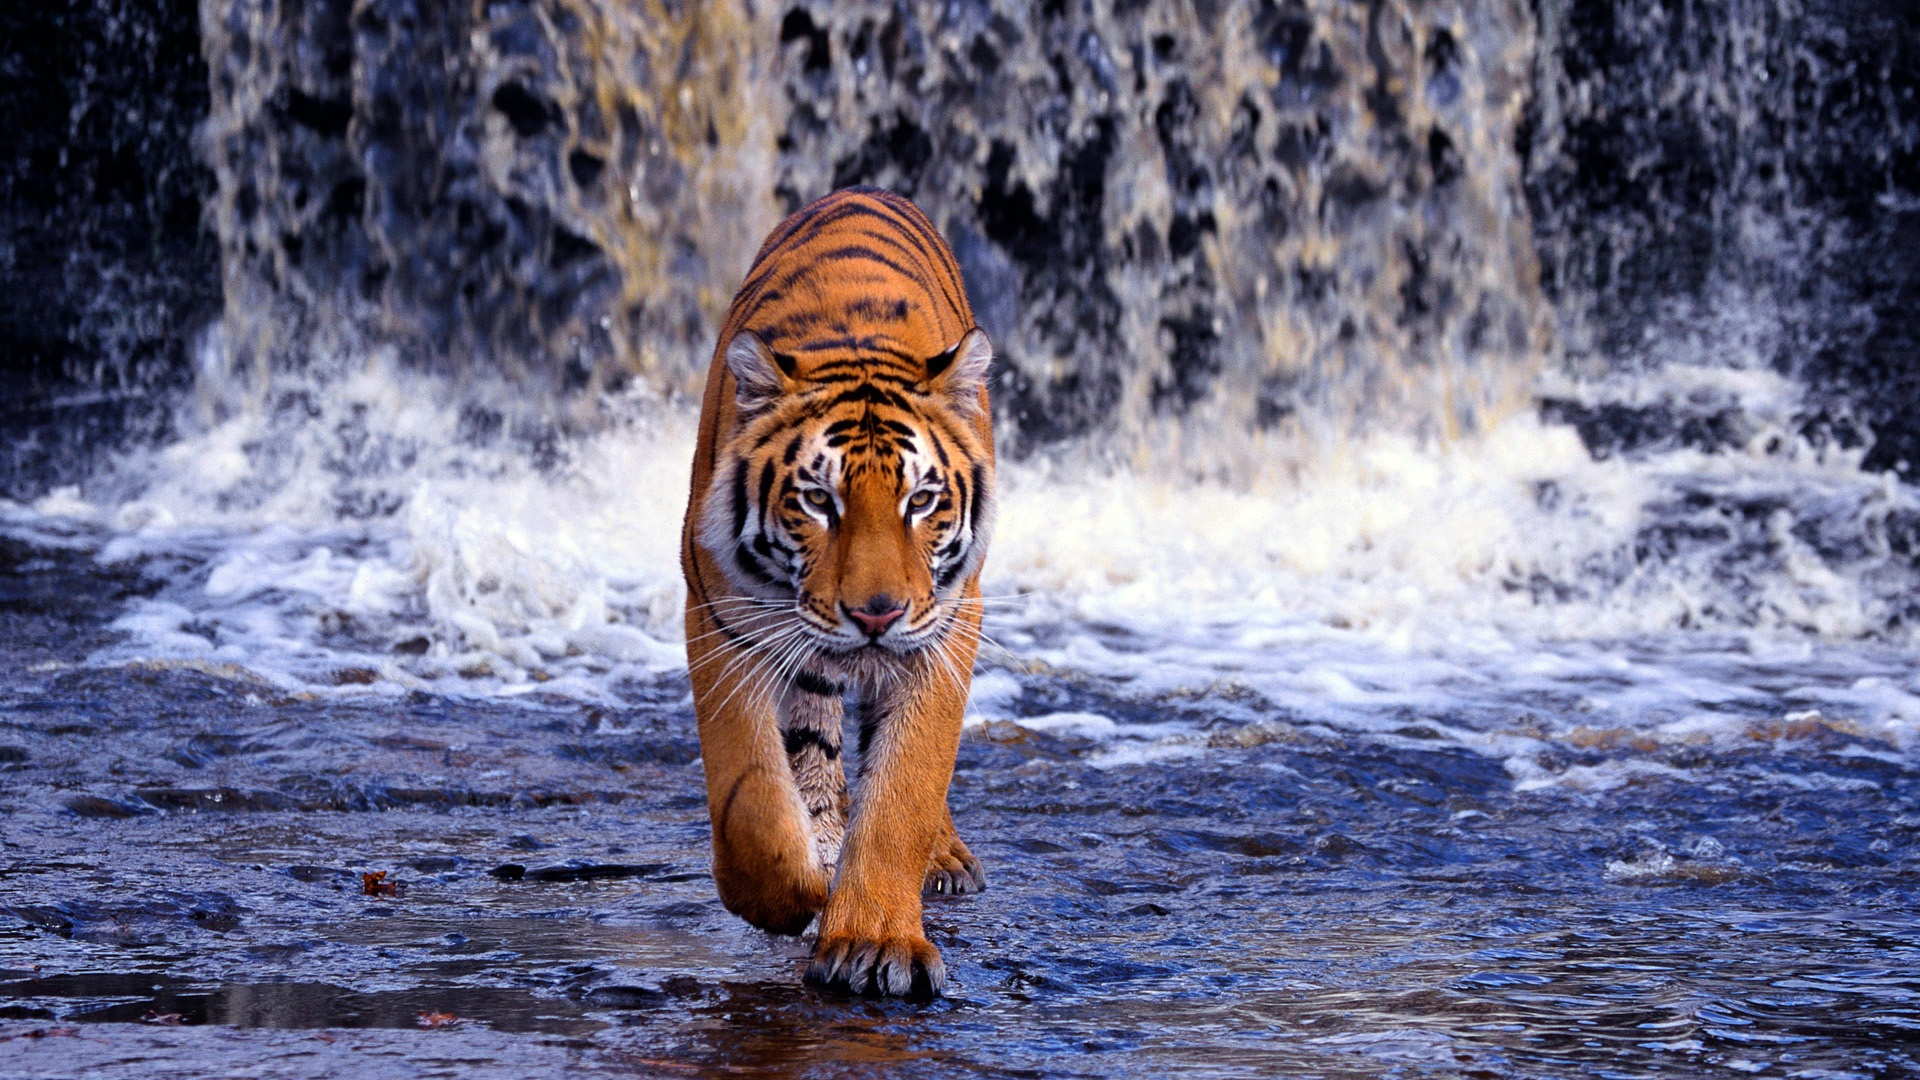 50 Tiger Wallpaper For Laptops On Wallpapersafari